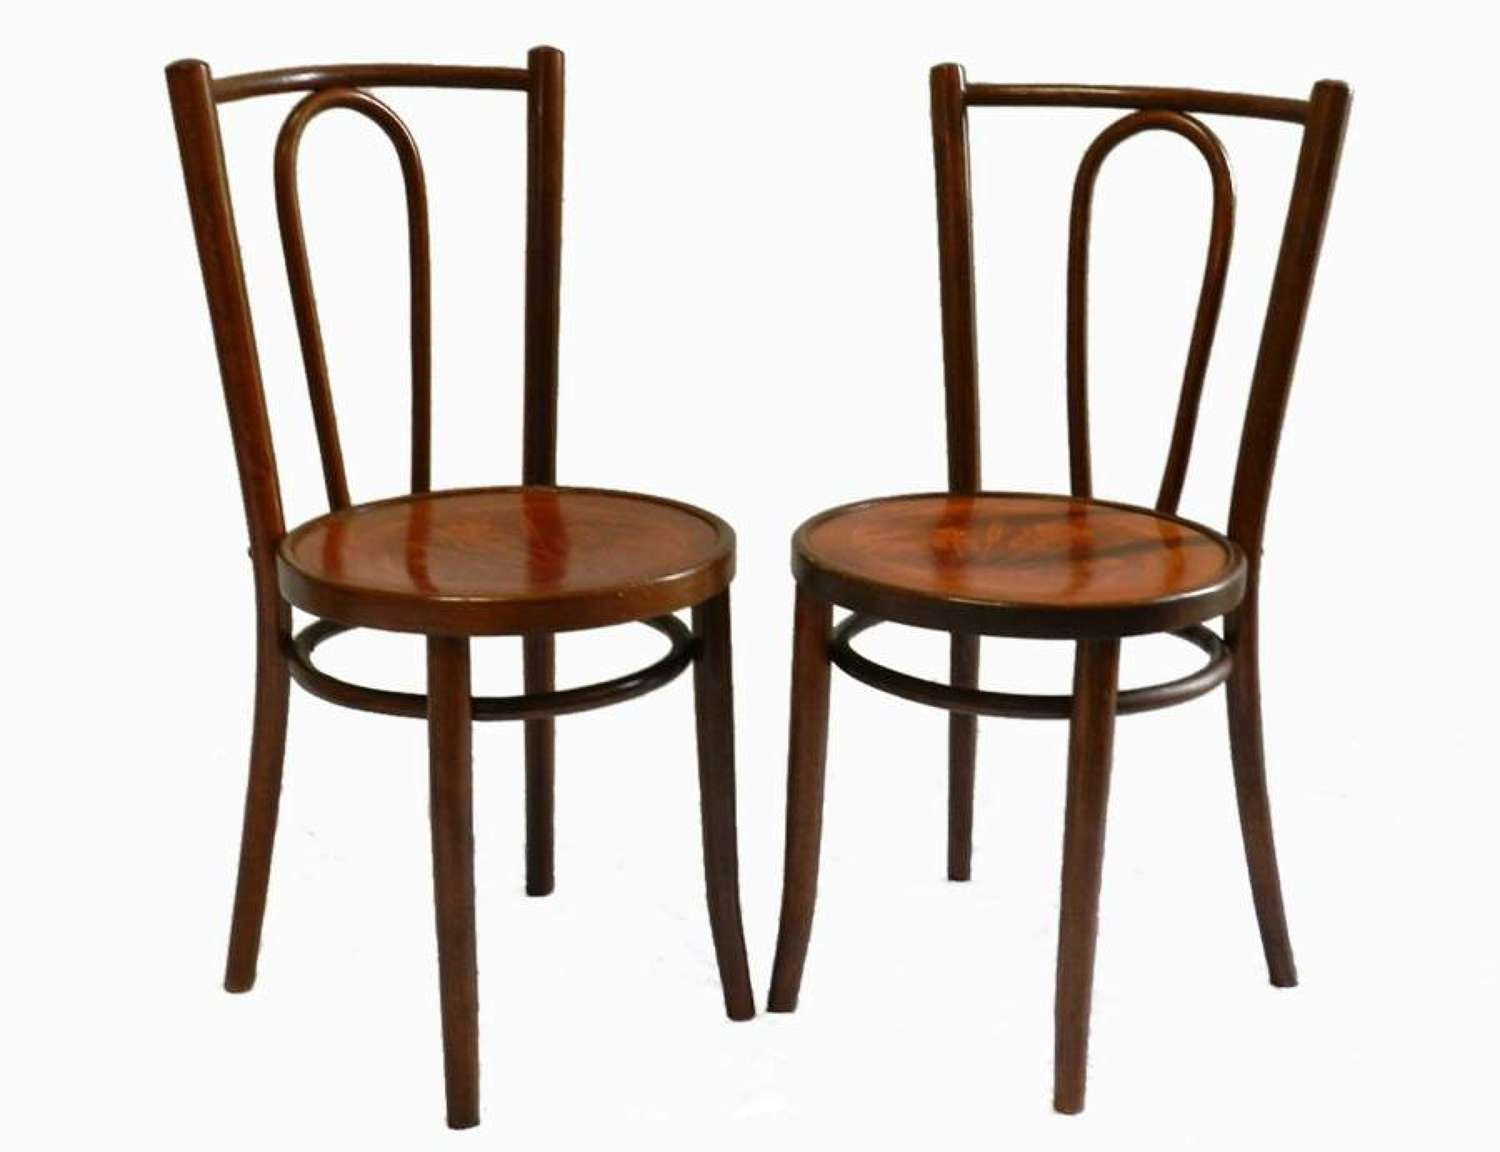 Good Pair of Art Nouveau Bentwood Cafe Bistro Chairs